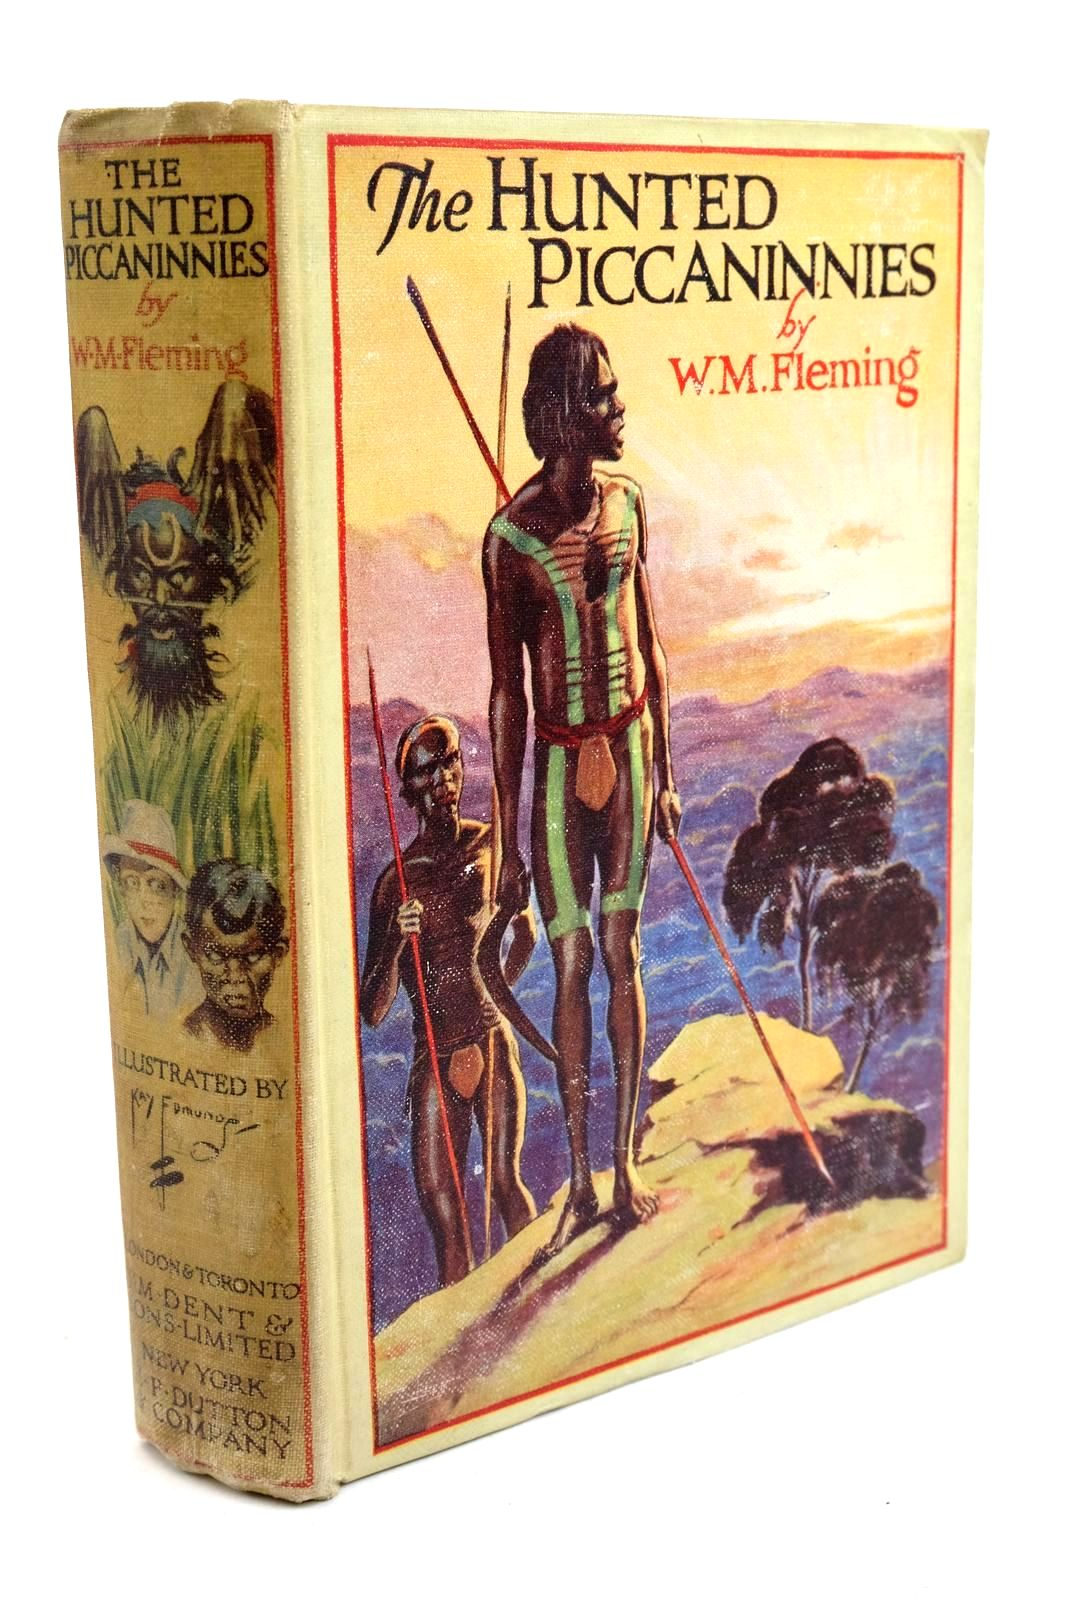 Photo of THE HUNTED PICCANINNIES written by Fleming, W.M. illustrated by Edmunds, Kay published by J.M. Dent & Sons Ltd. (STOCK CODE: 1321656)  for sale by Stella & Rose's Books